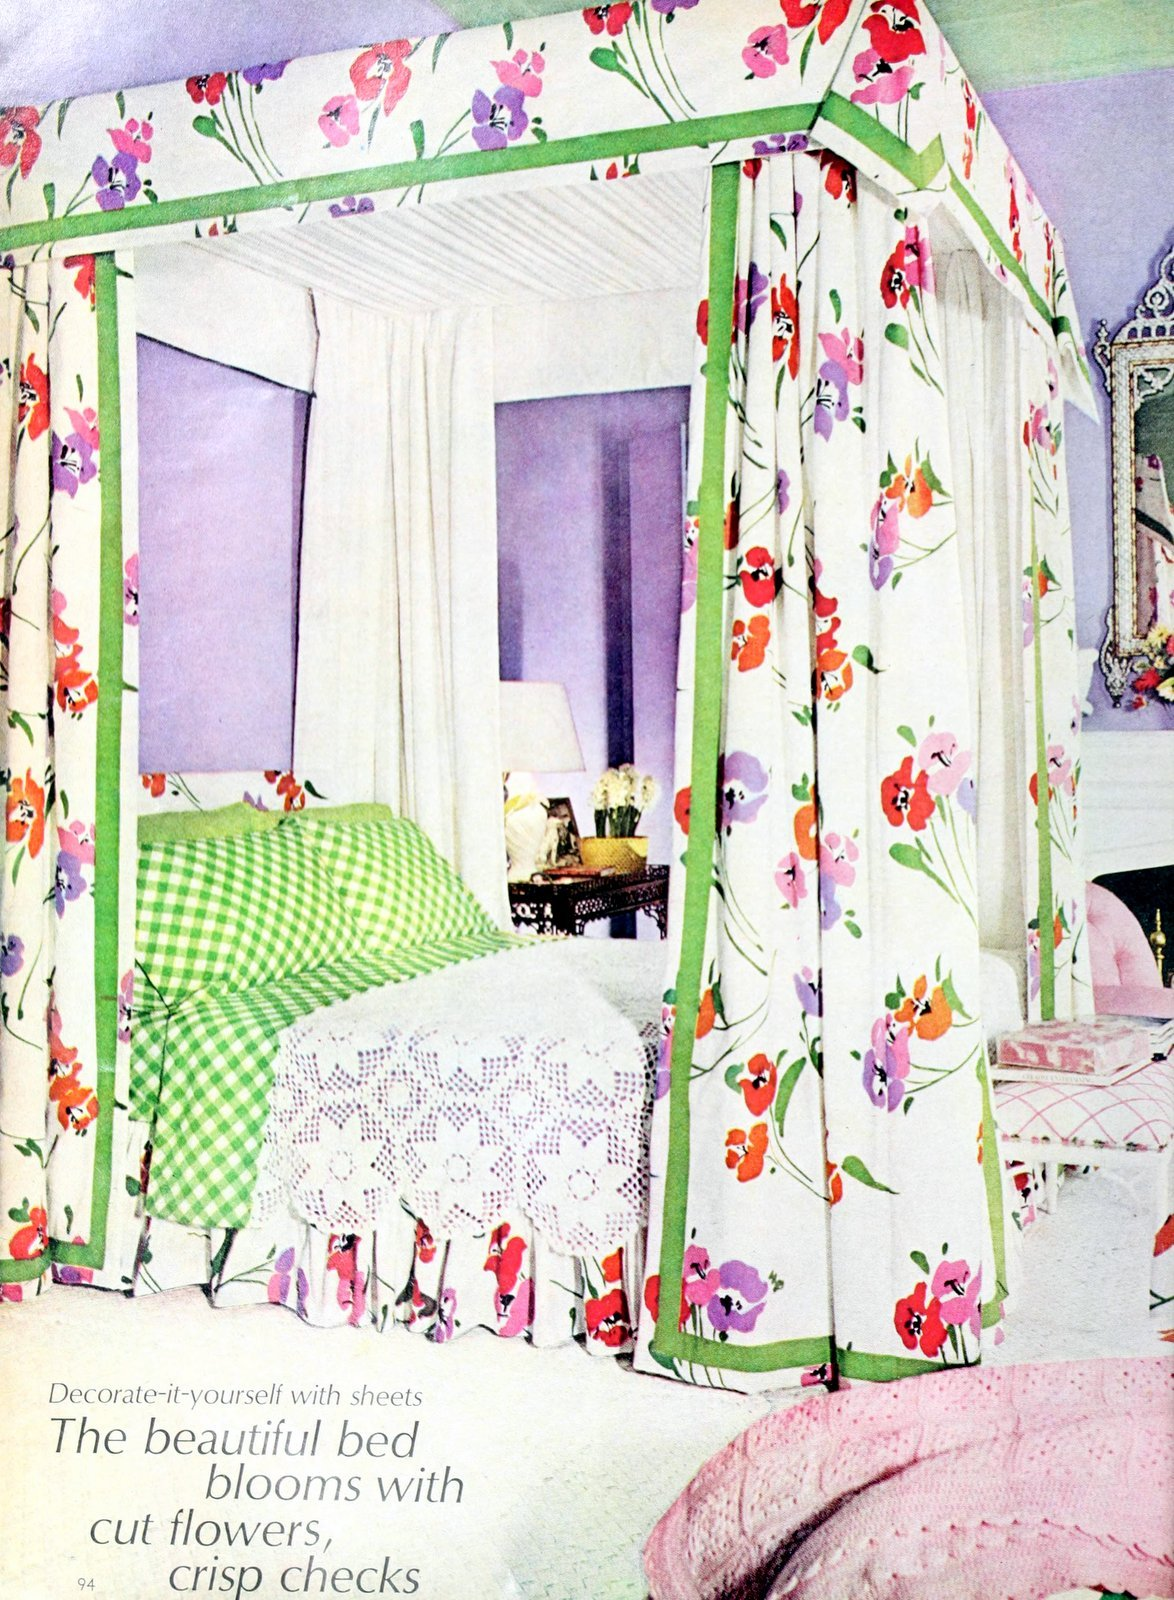 DIY canopy for a bed made with flowery sheets (1973)